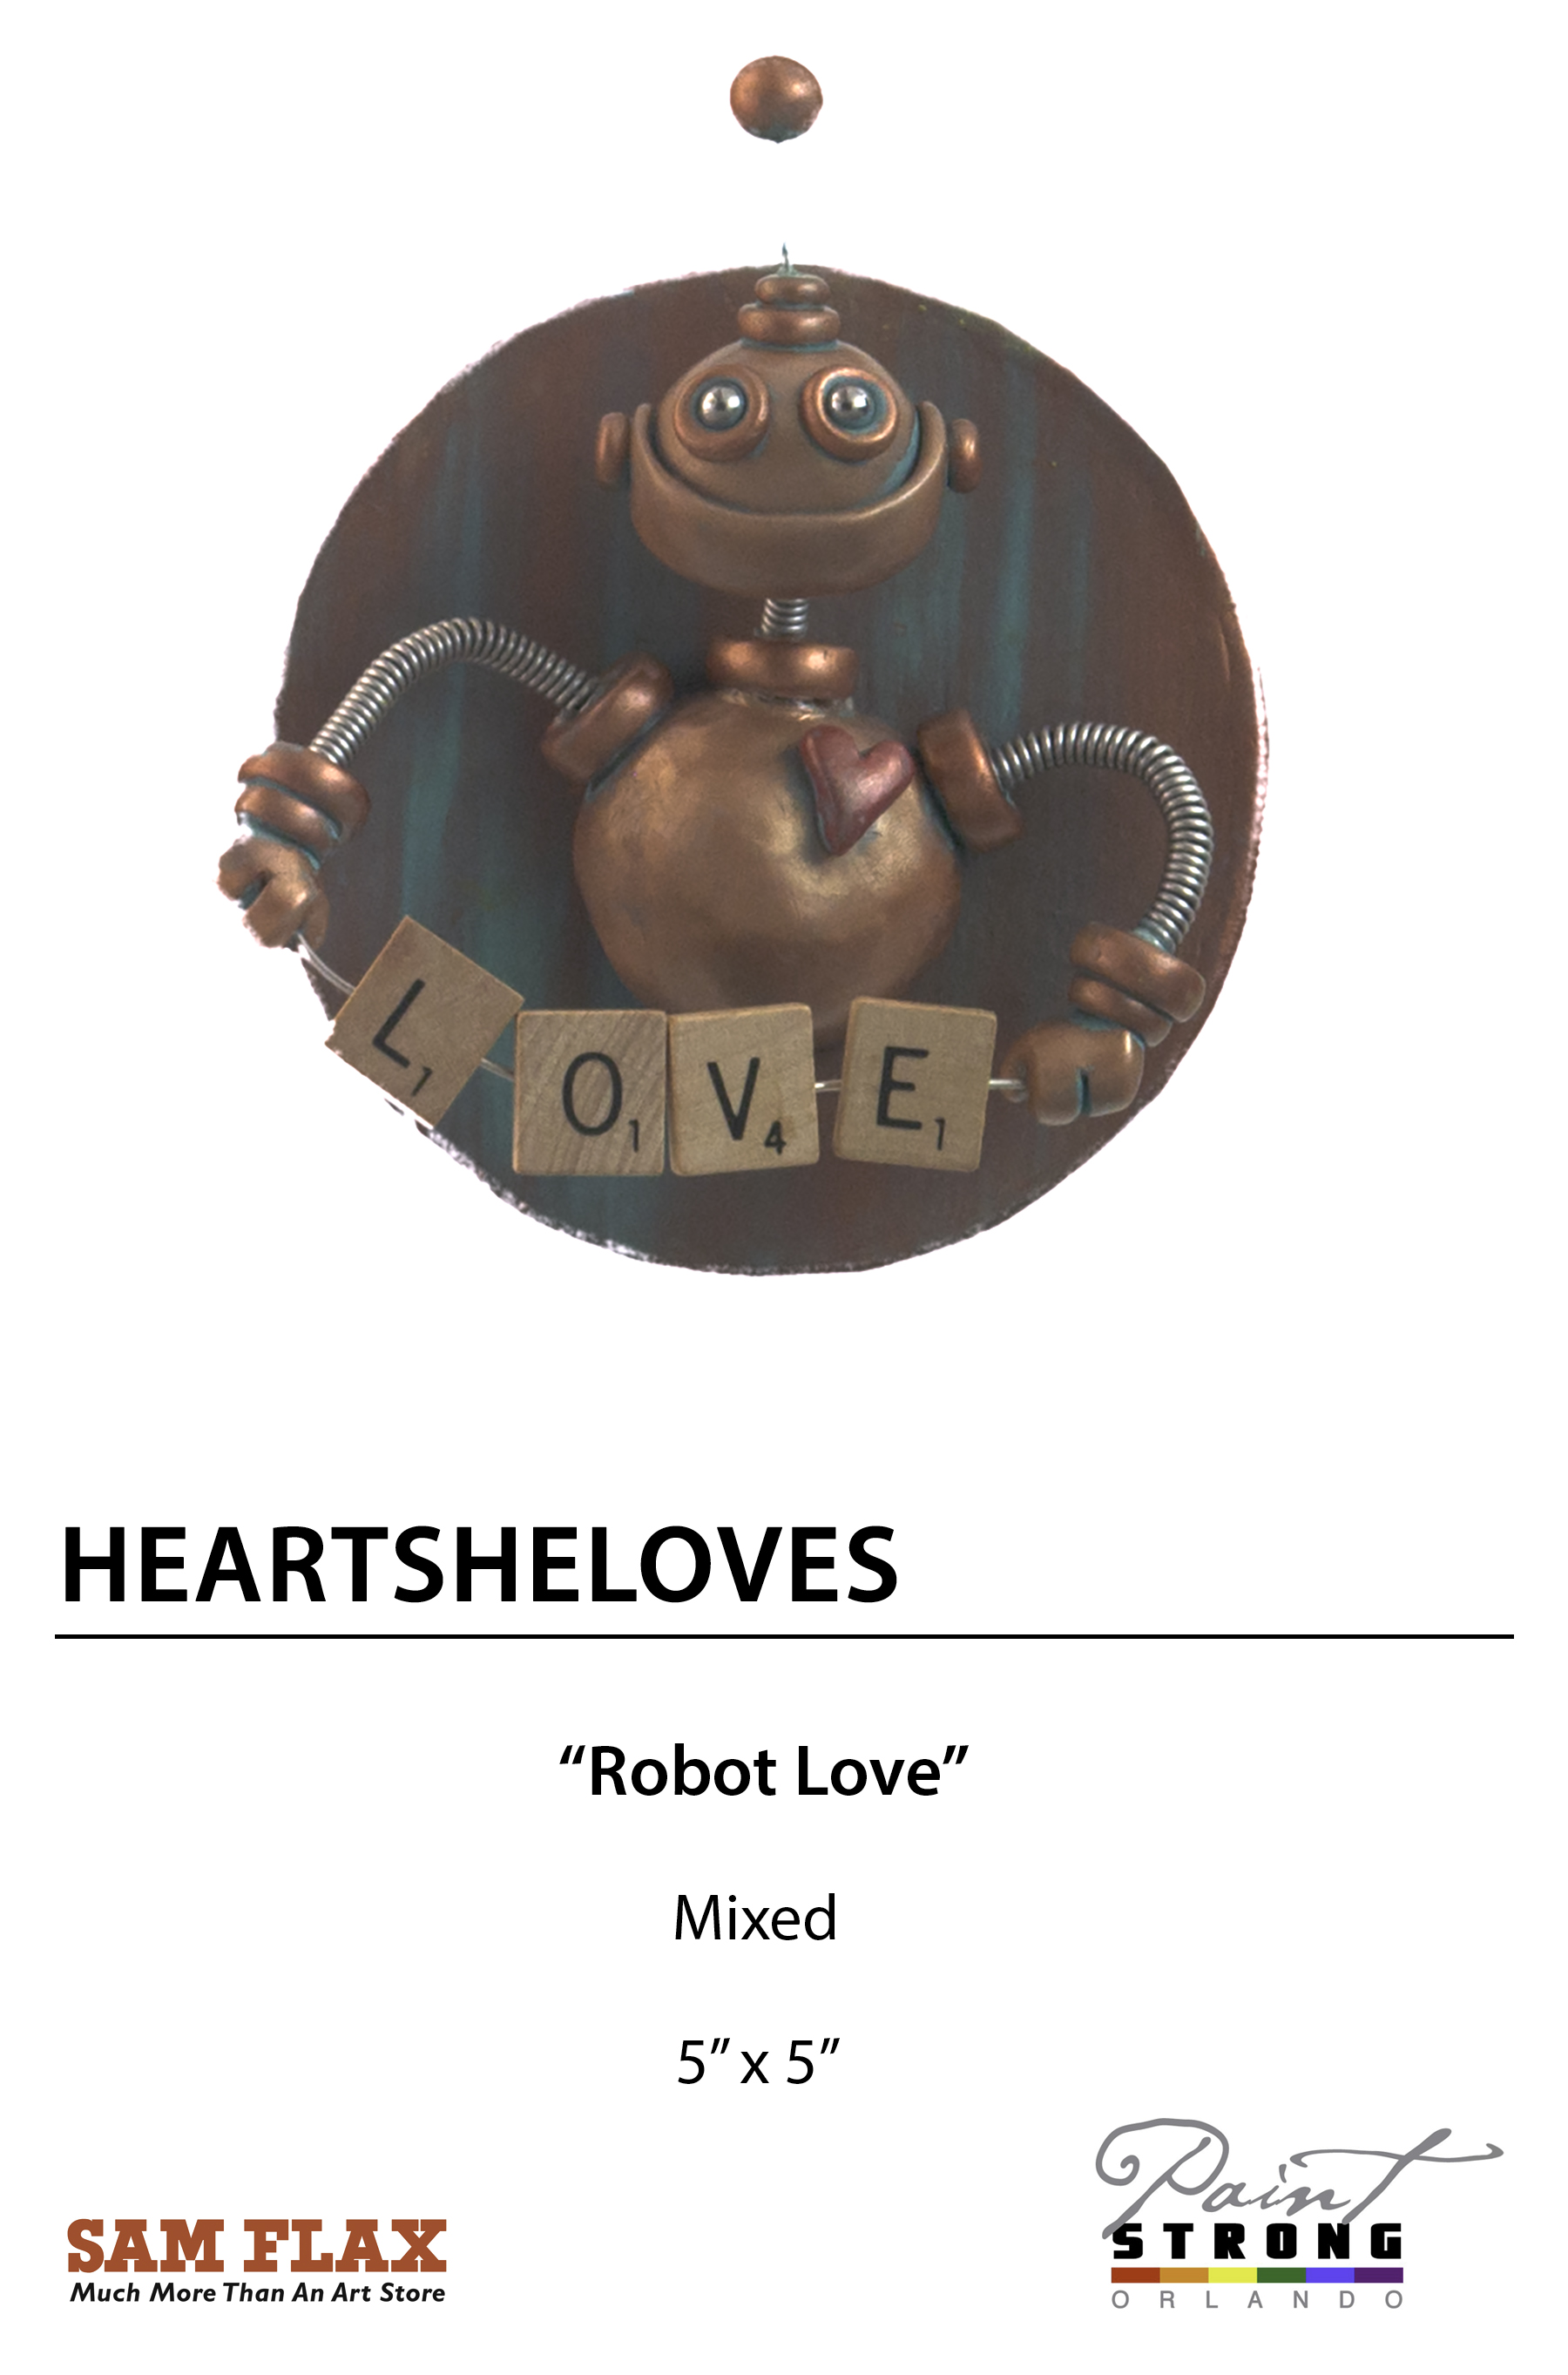 HEARTSHELOVES